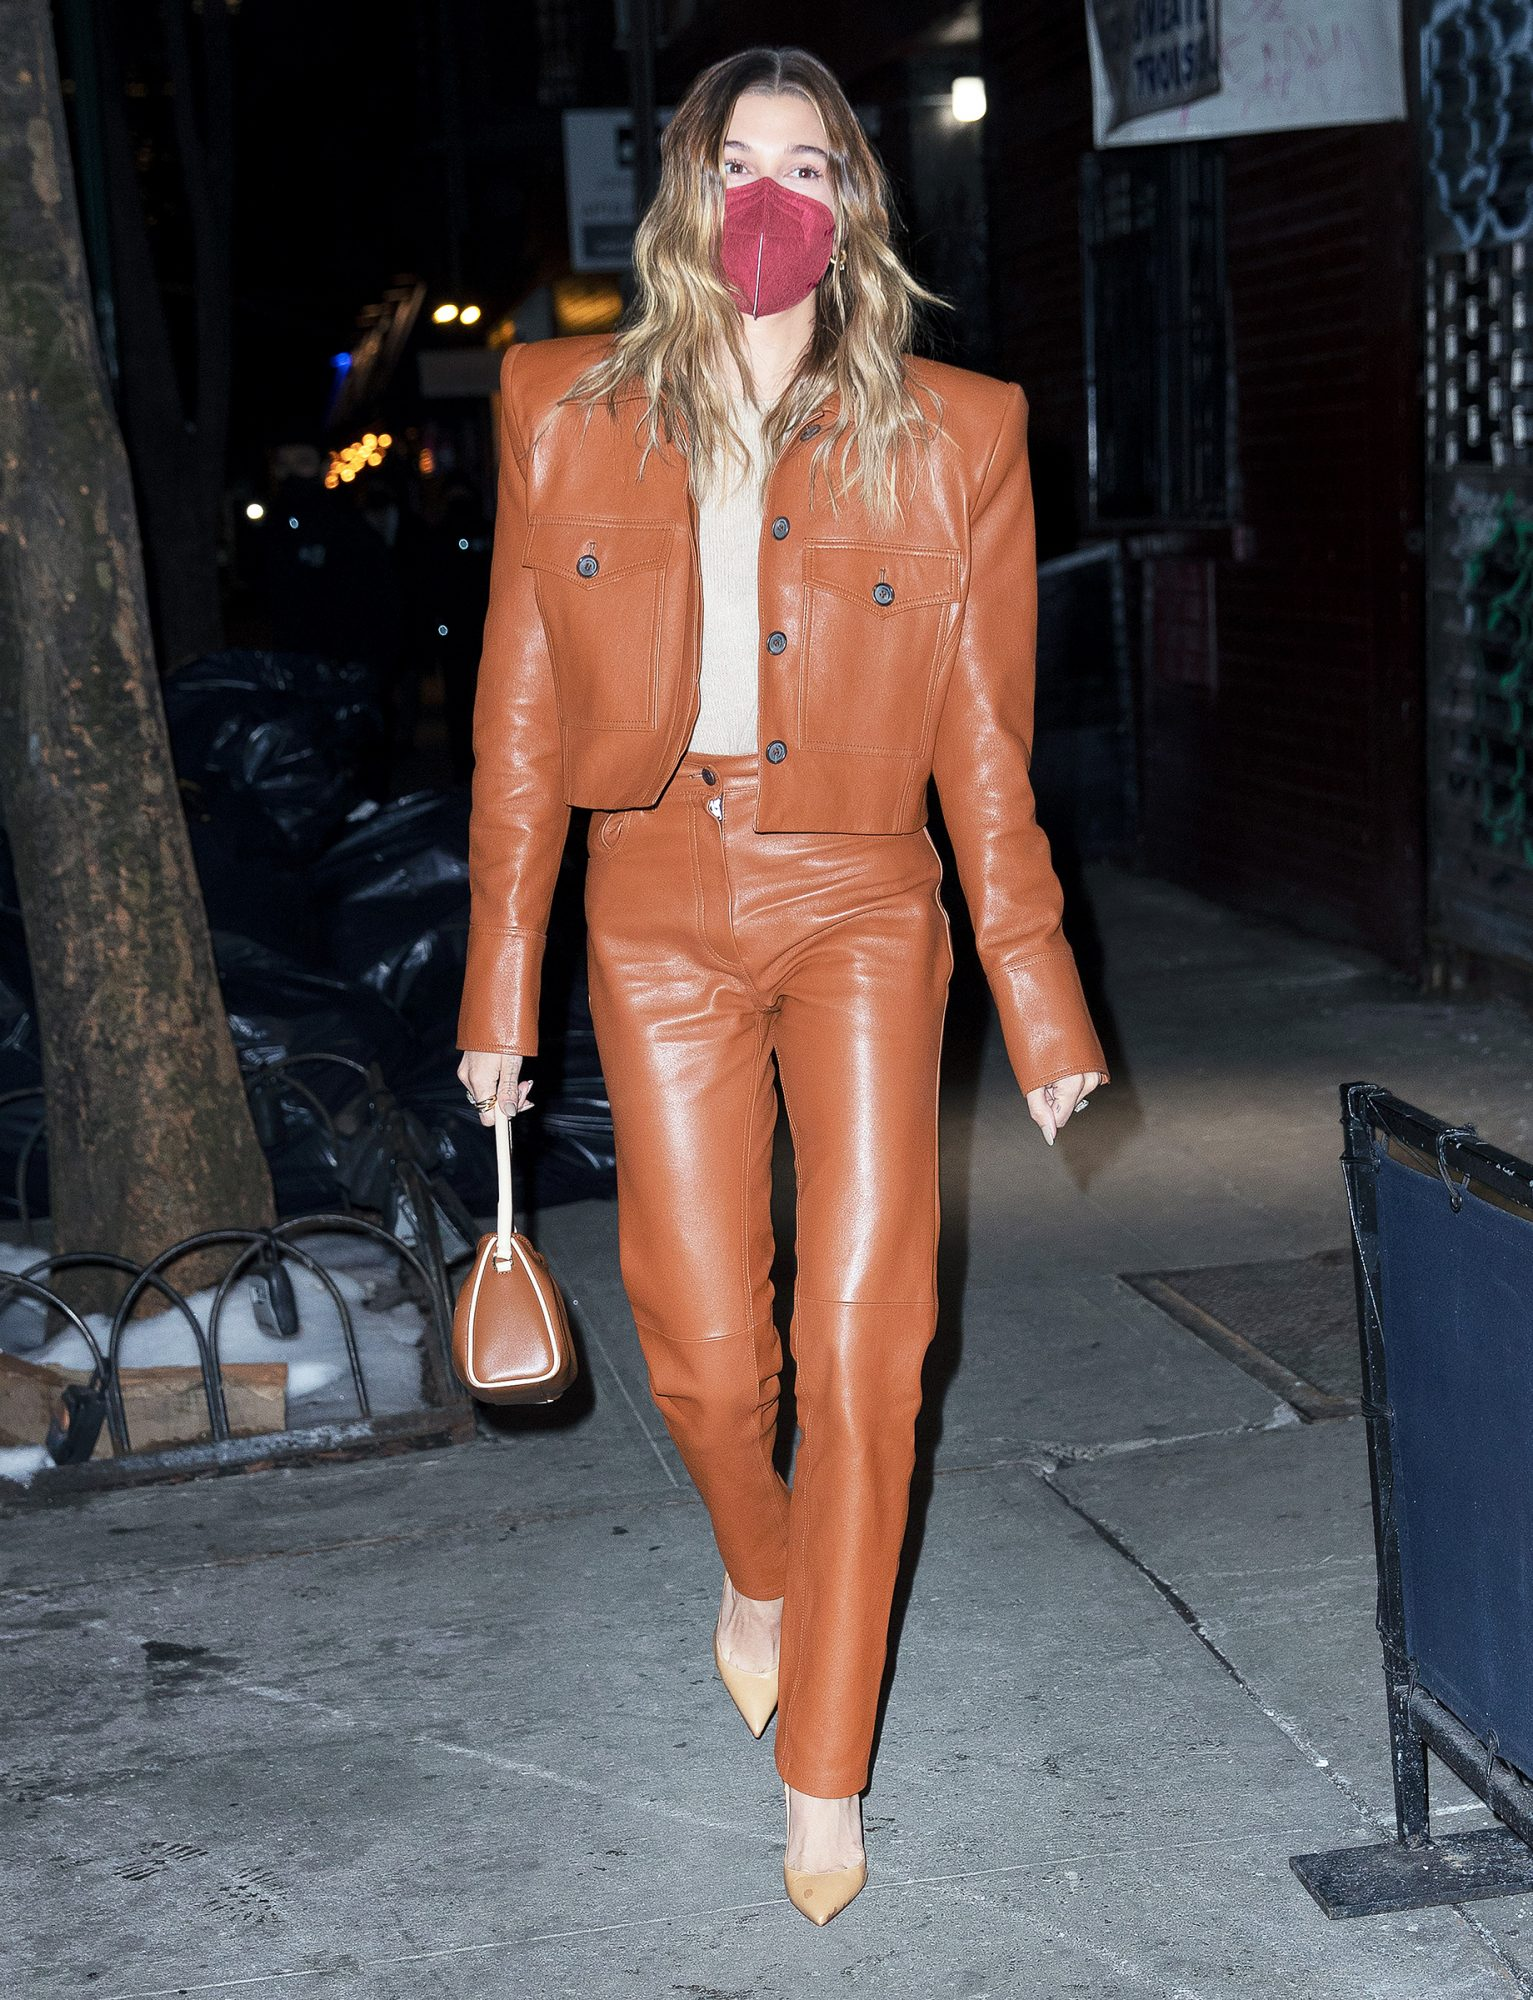 Hailey Bieber Goes For Dinner With Justine Skye In NYC